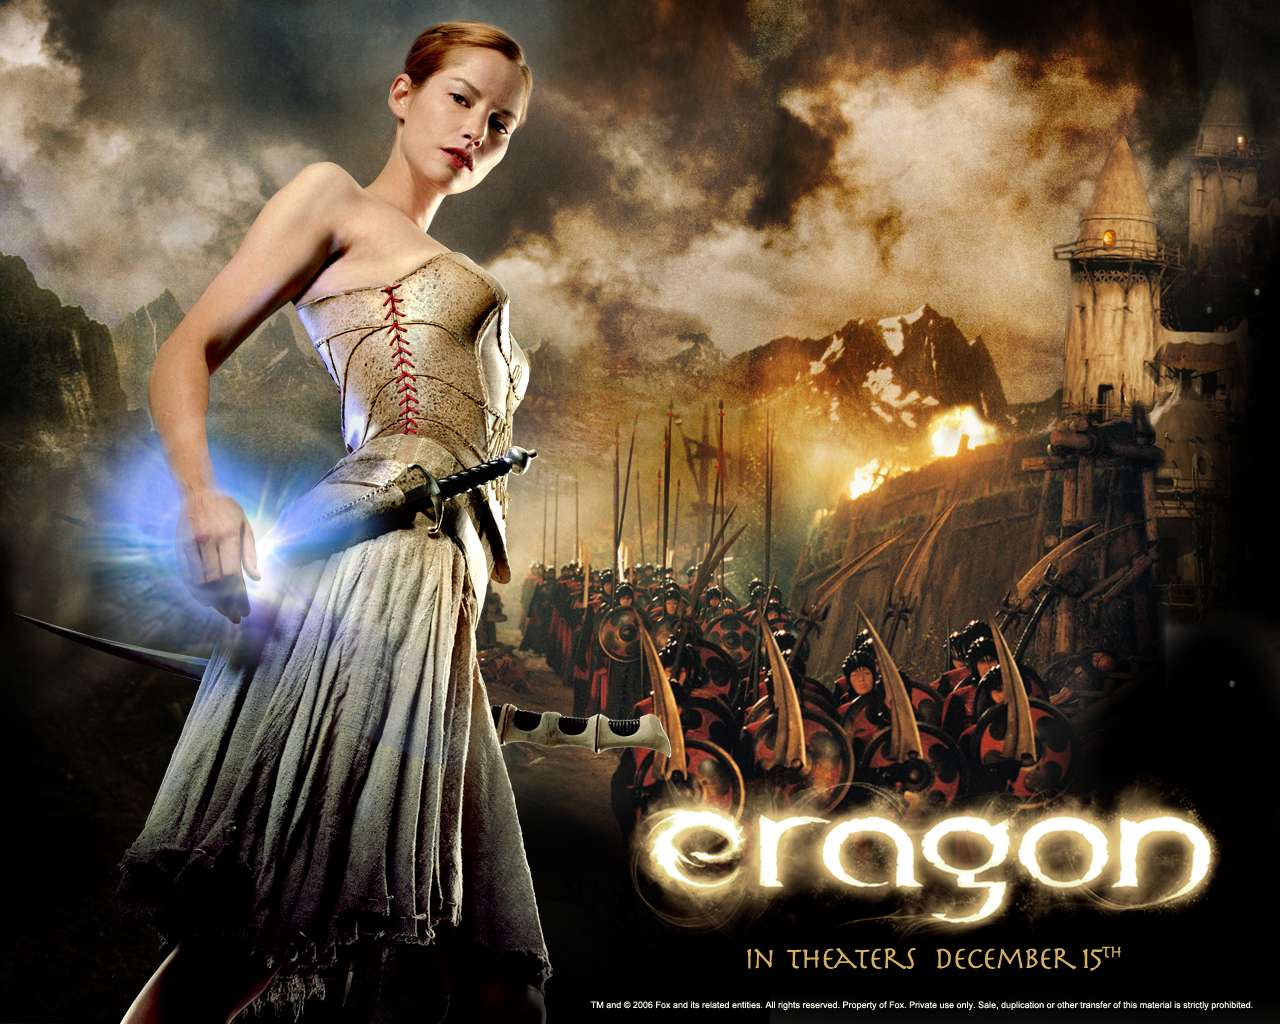 Movie Posters 2006: Celebrities, Movies And Games: Eragon Movie Posters 2006